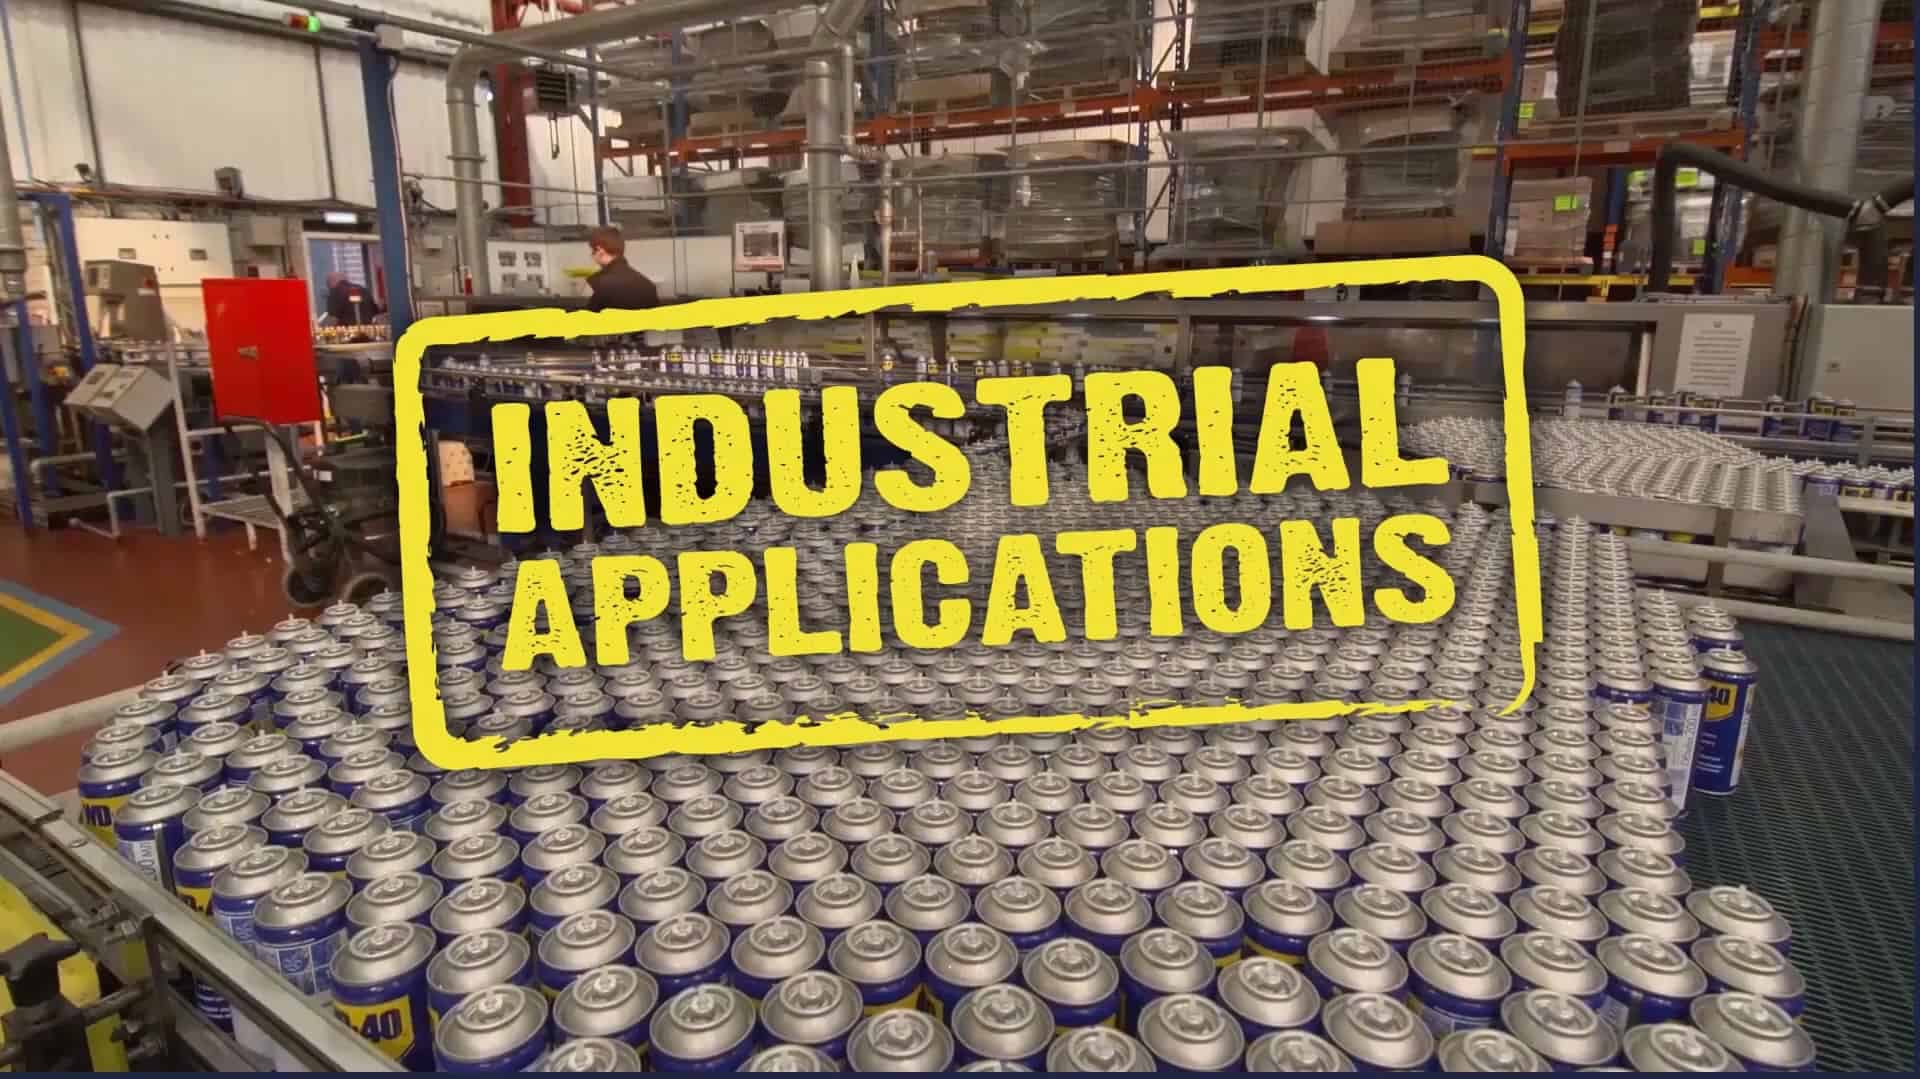 wd 40 specialist product industrial application